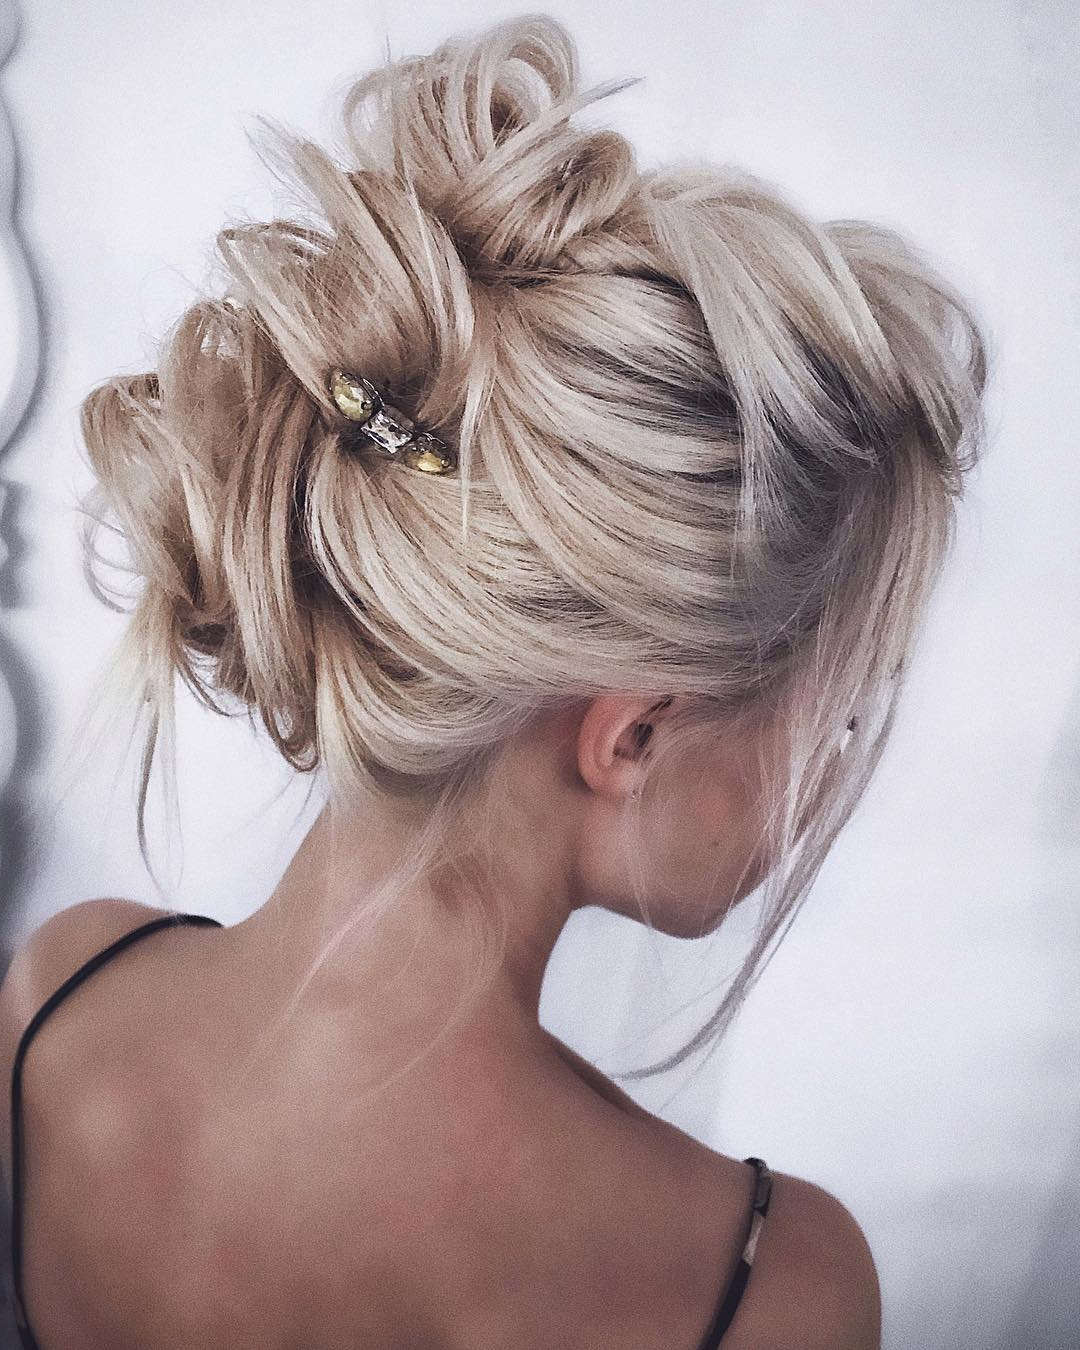 10 Gorgeous Prom Updos For Long Hair, Prom Updo Hairstyles 2019 Within Newest Messy High Bun Prom Updos (View 1 of 20)